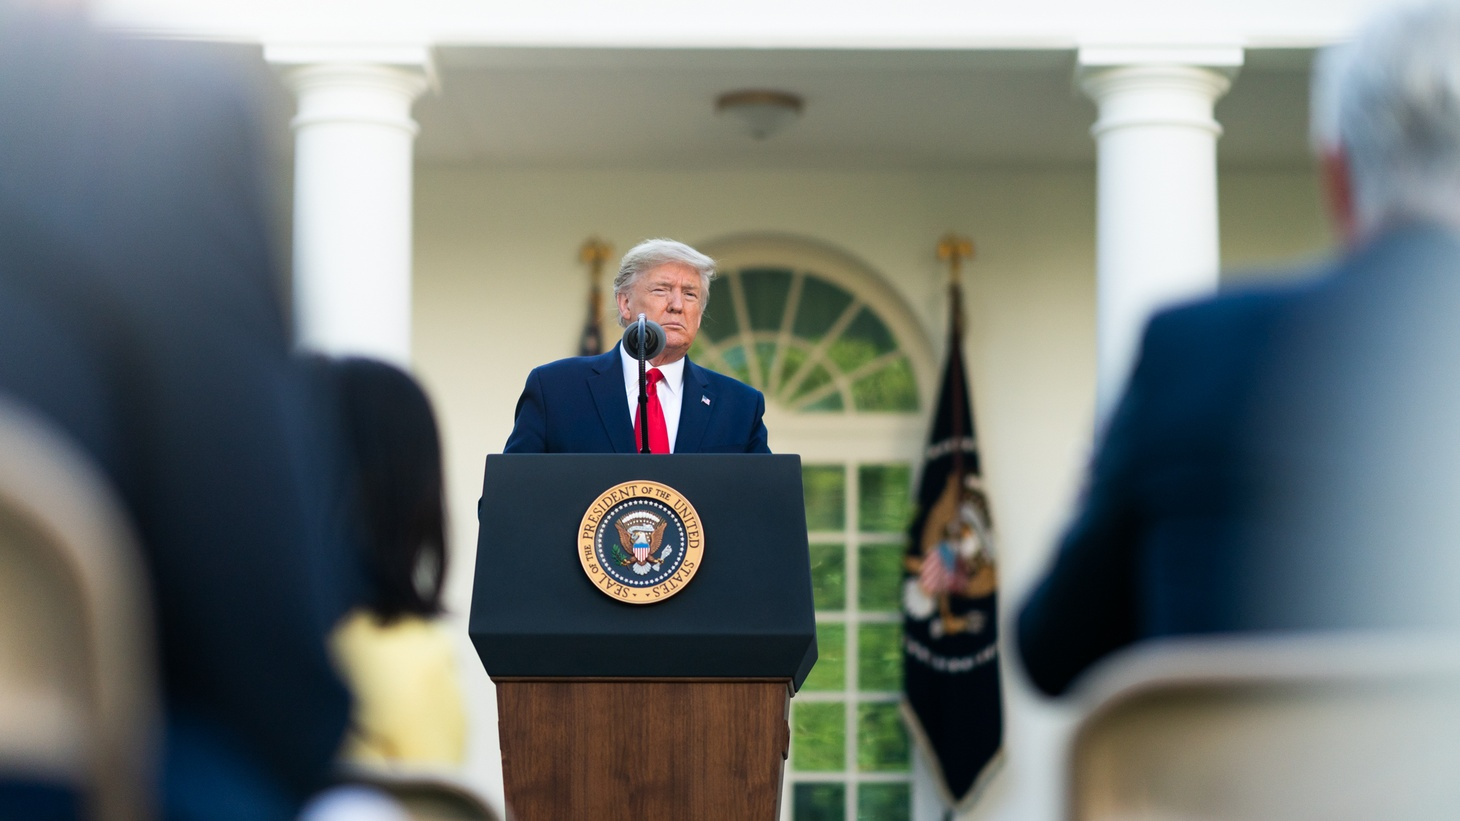 President Donald J. Trump delivers remarks during a coronavirus (COVID-19) update briefing Monday, March 30, 2020, in the Rose Garden at the White House.